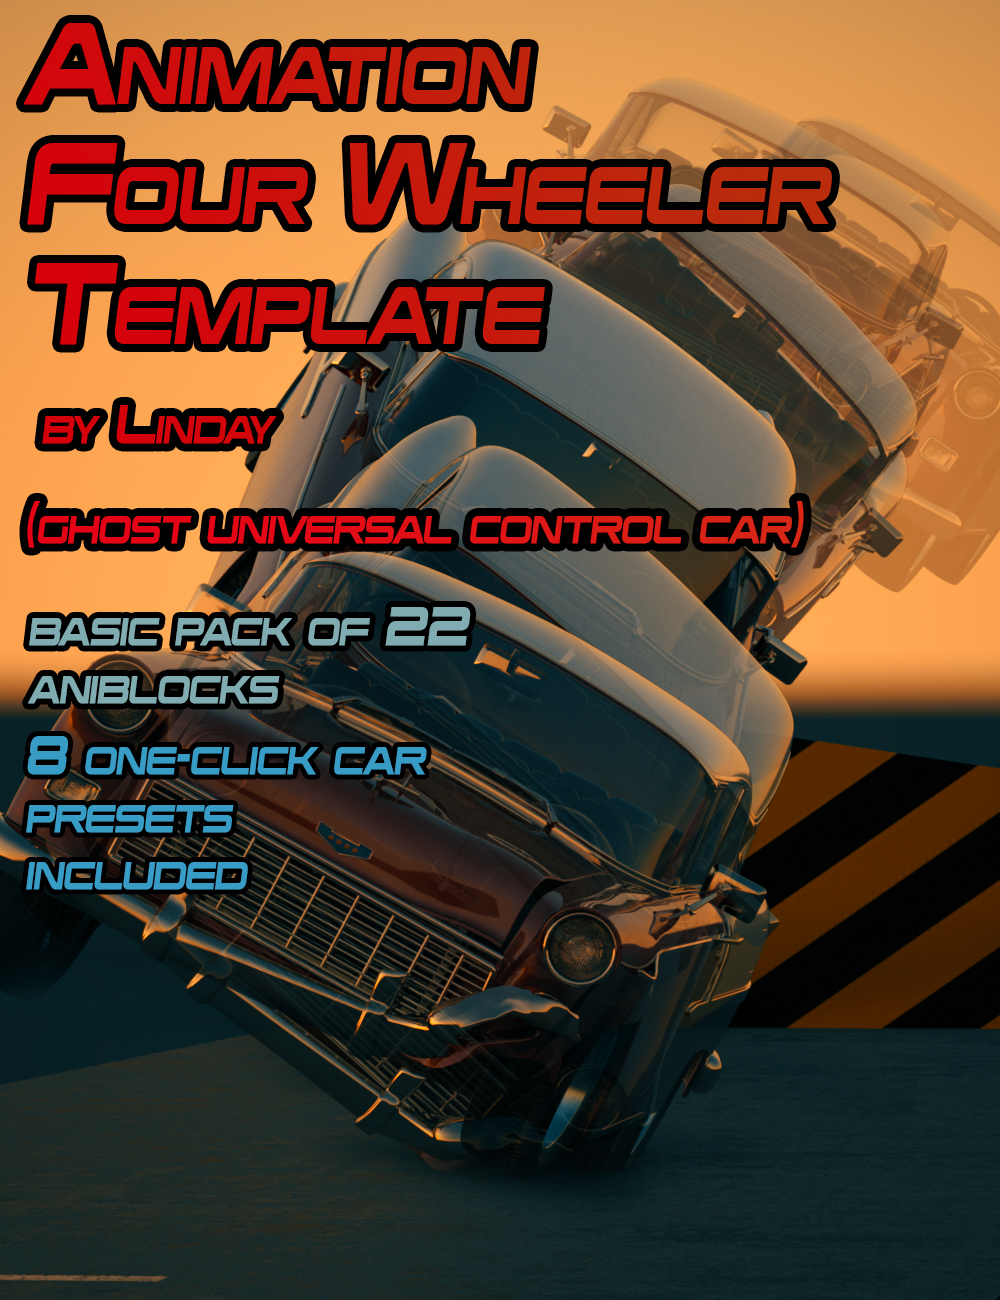 Animation Four Wheeler Template by: Linday, 3D Models by Daz 3D